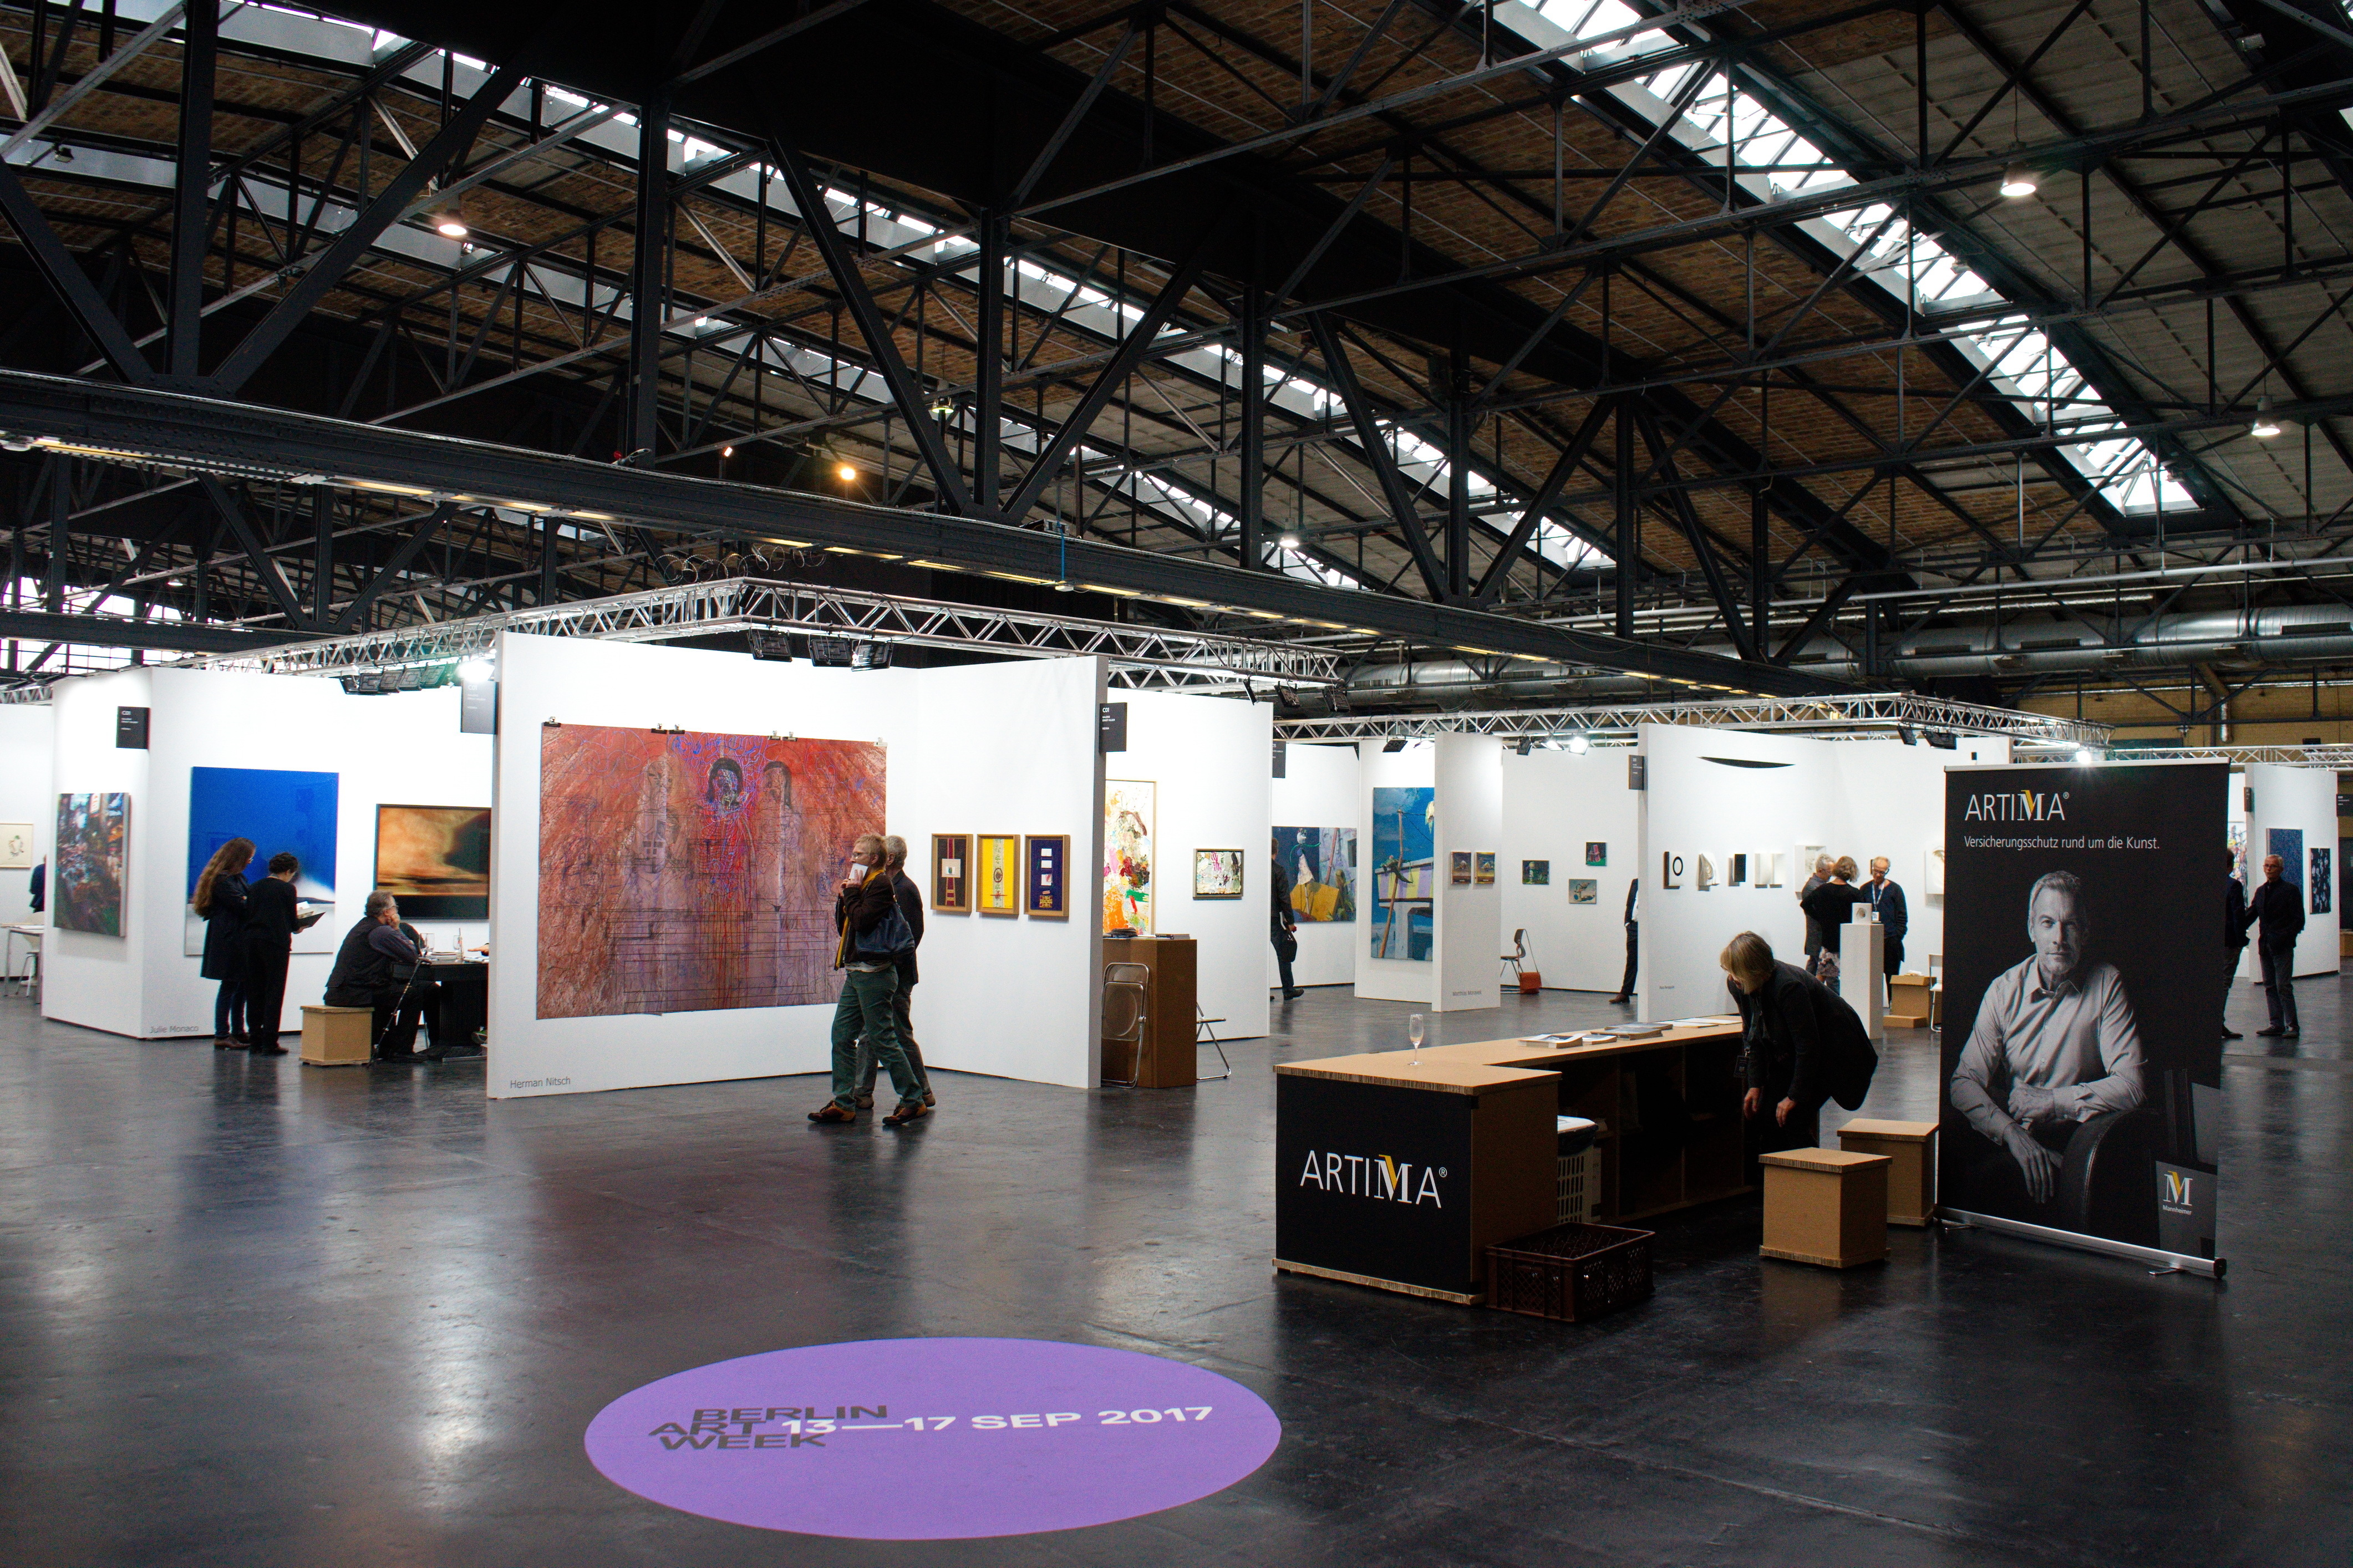 POSITIONS, Berlin Art Fair, ARENA, Berlin, 14.09.2017